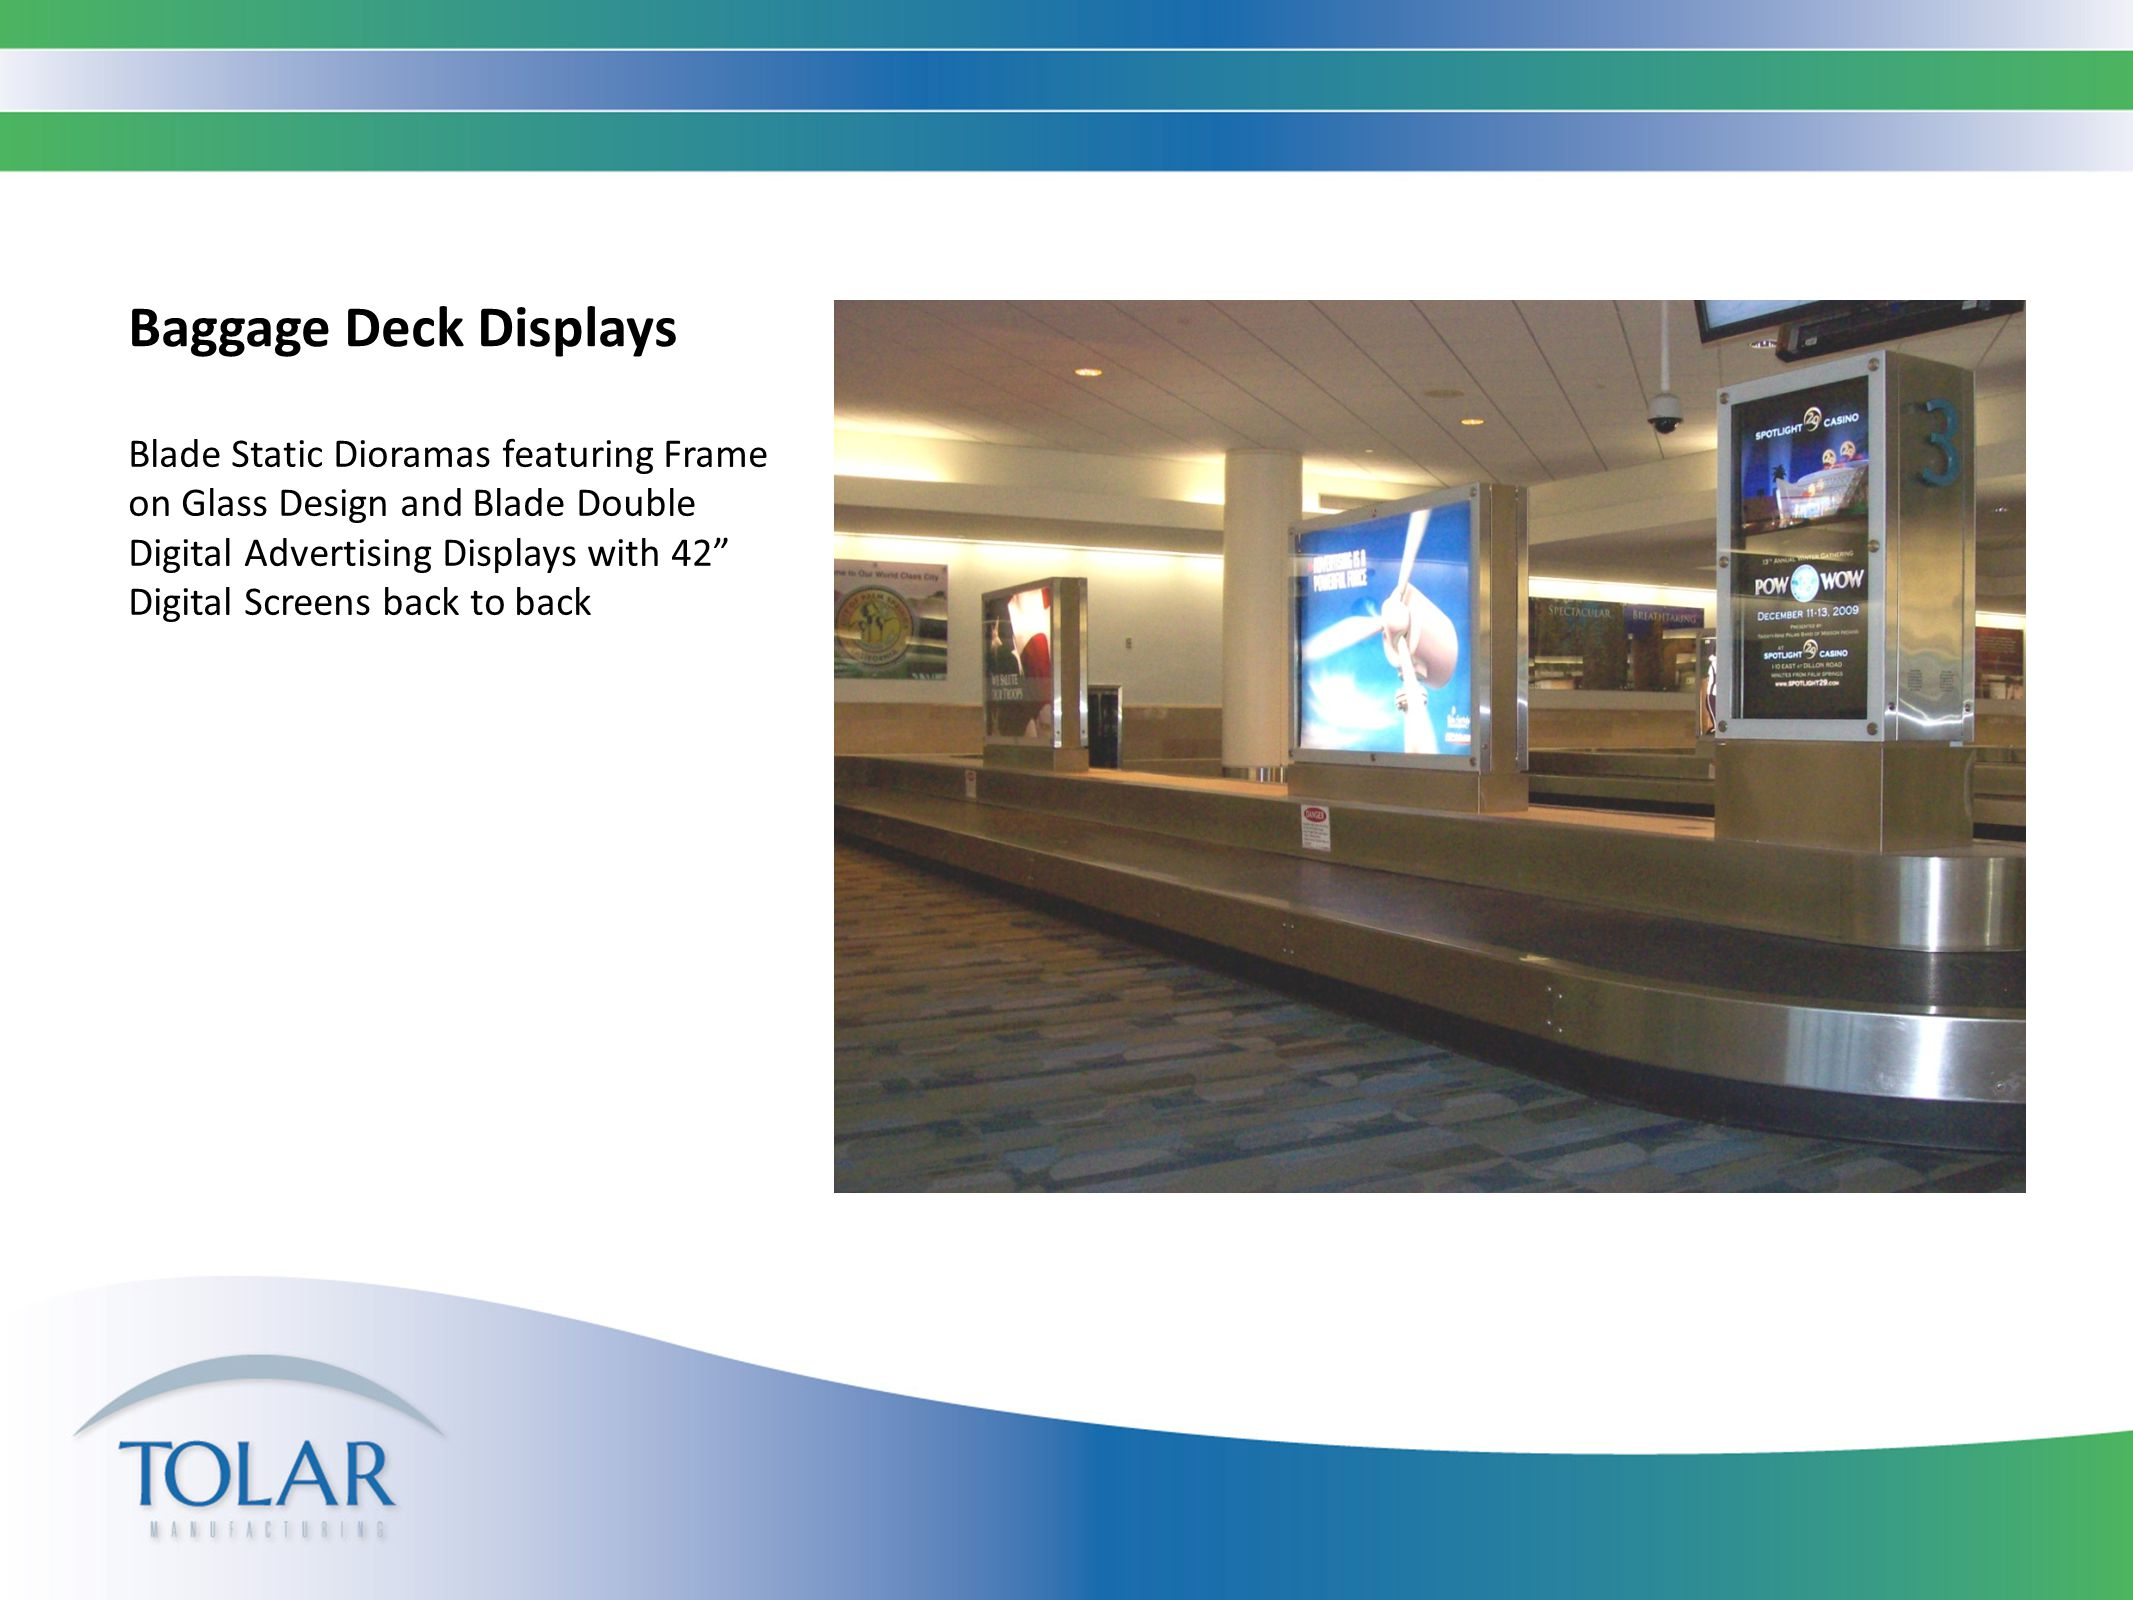 Baggage Deck Displays Blade Static Dioramas featuring Frame on Glass Design and Blade Double Digital Advertising Displays with 42 Digital Screens back to back